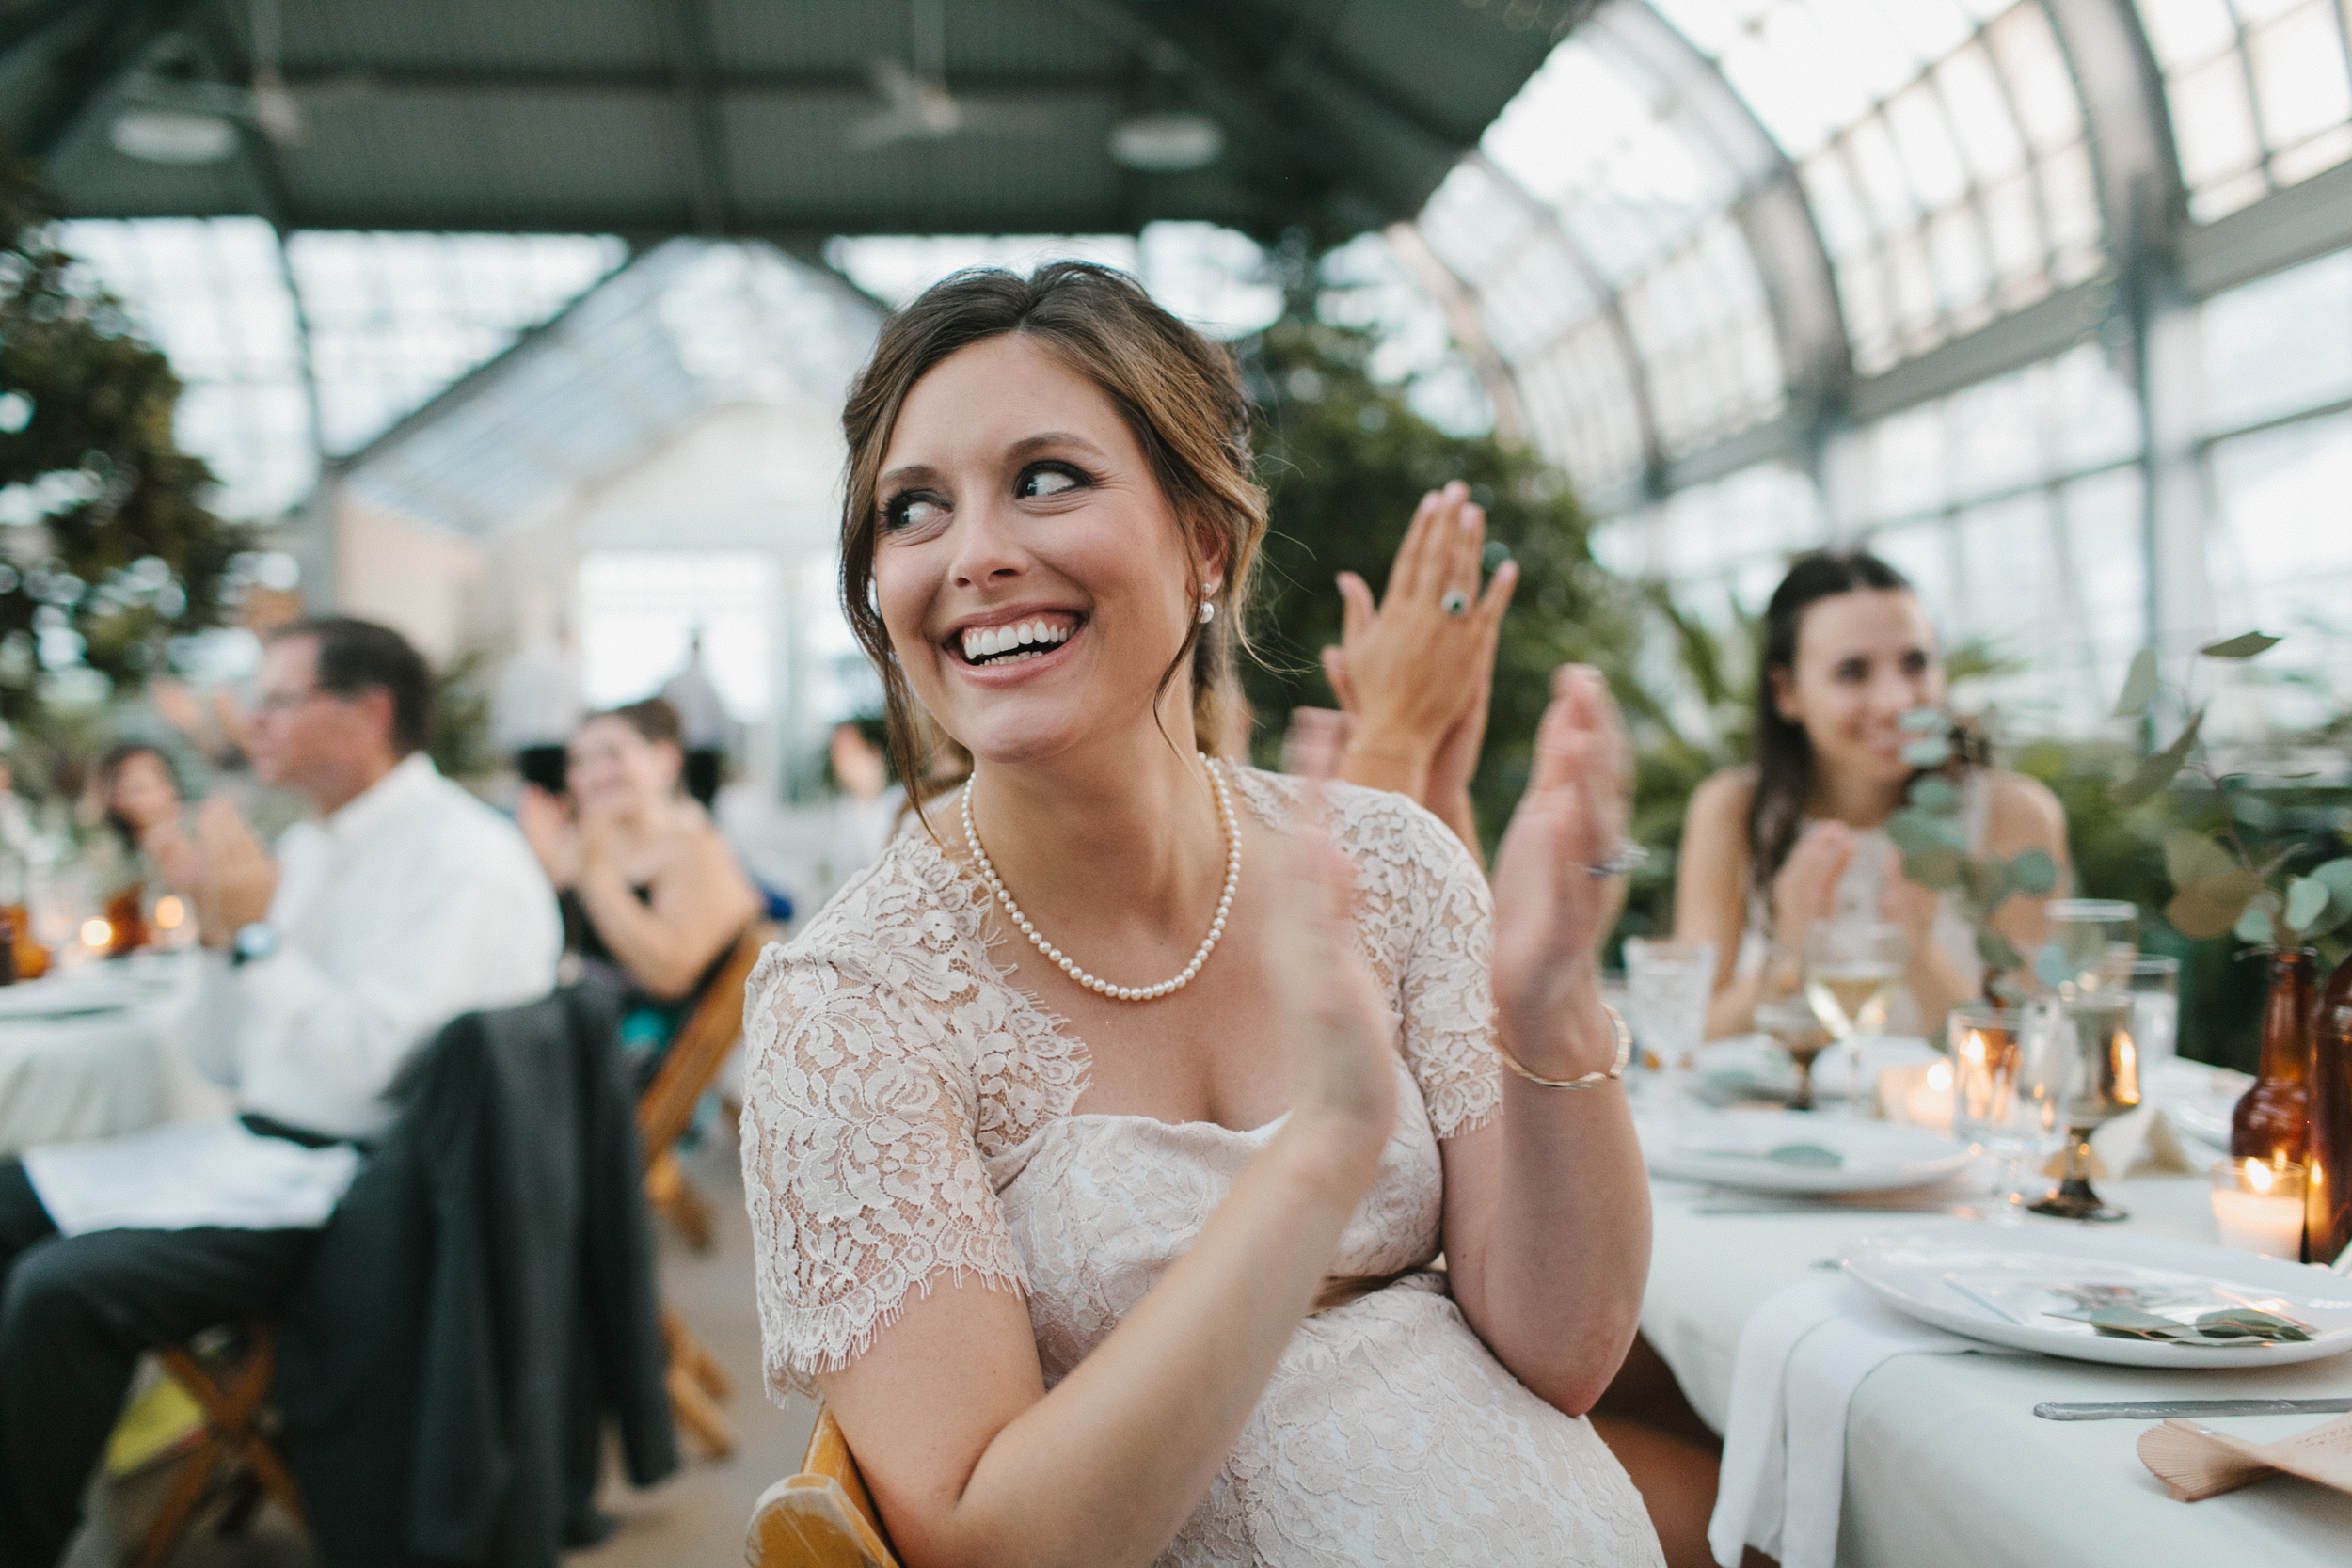 Chicago Wedding Garfield Park Conservatory Mae Stier Wedding Photographer Lifestyle Photography Midwest California-139.jpg